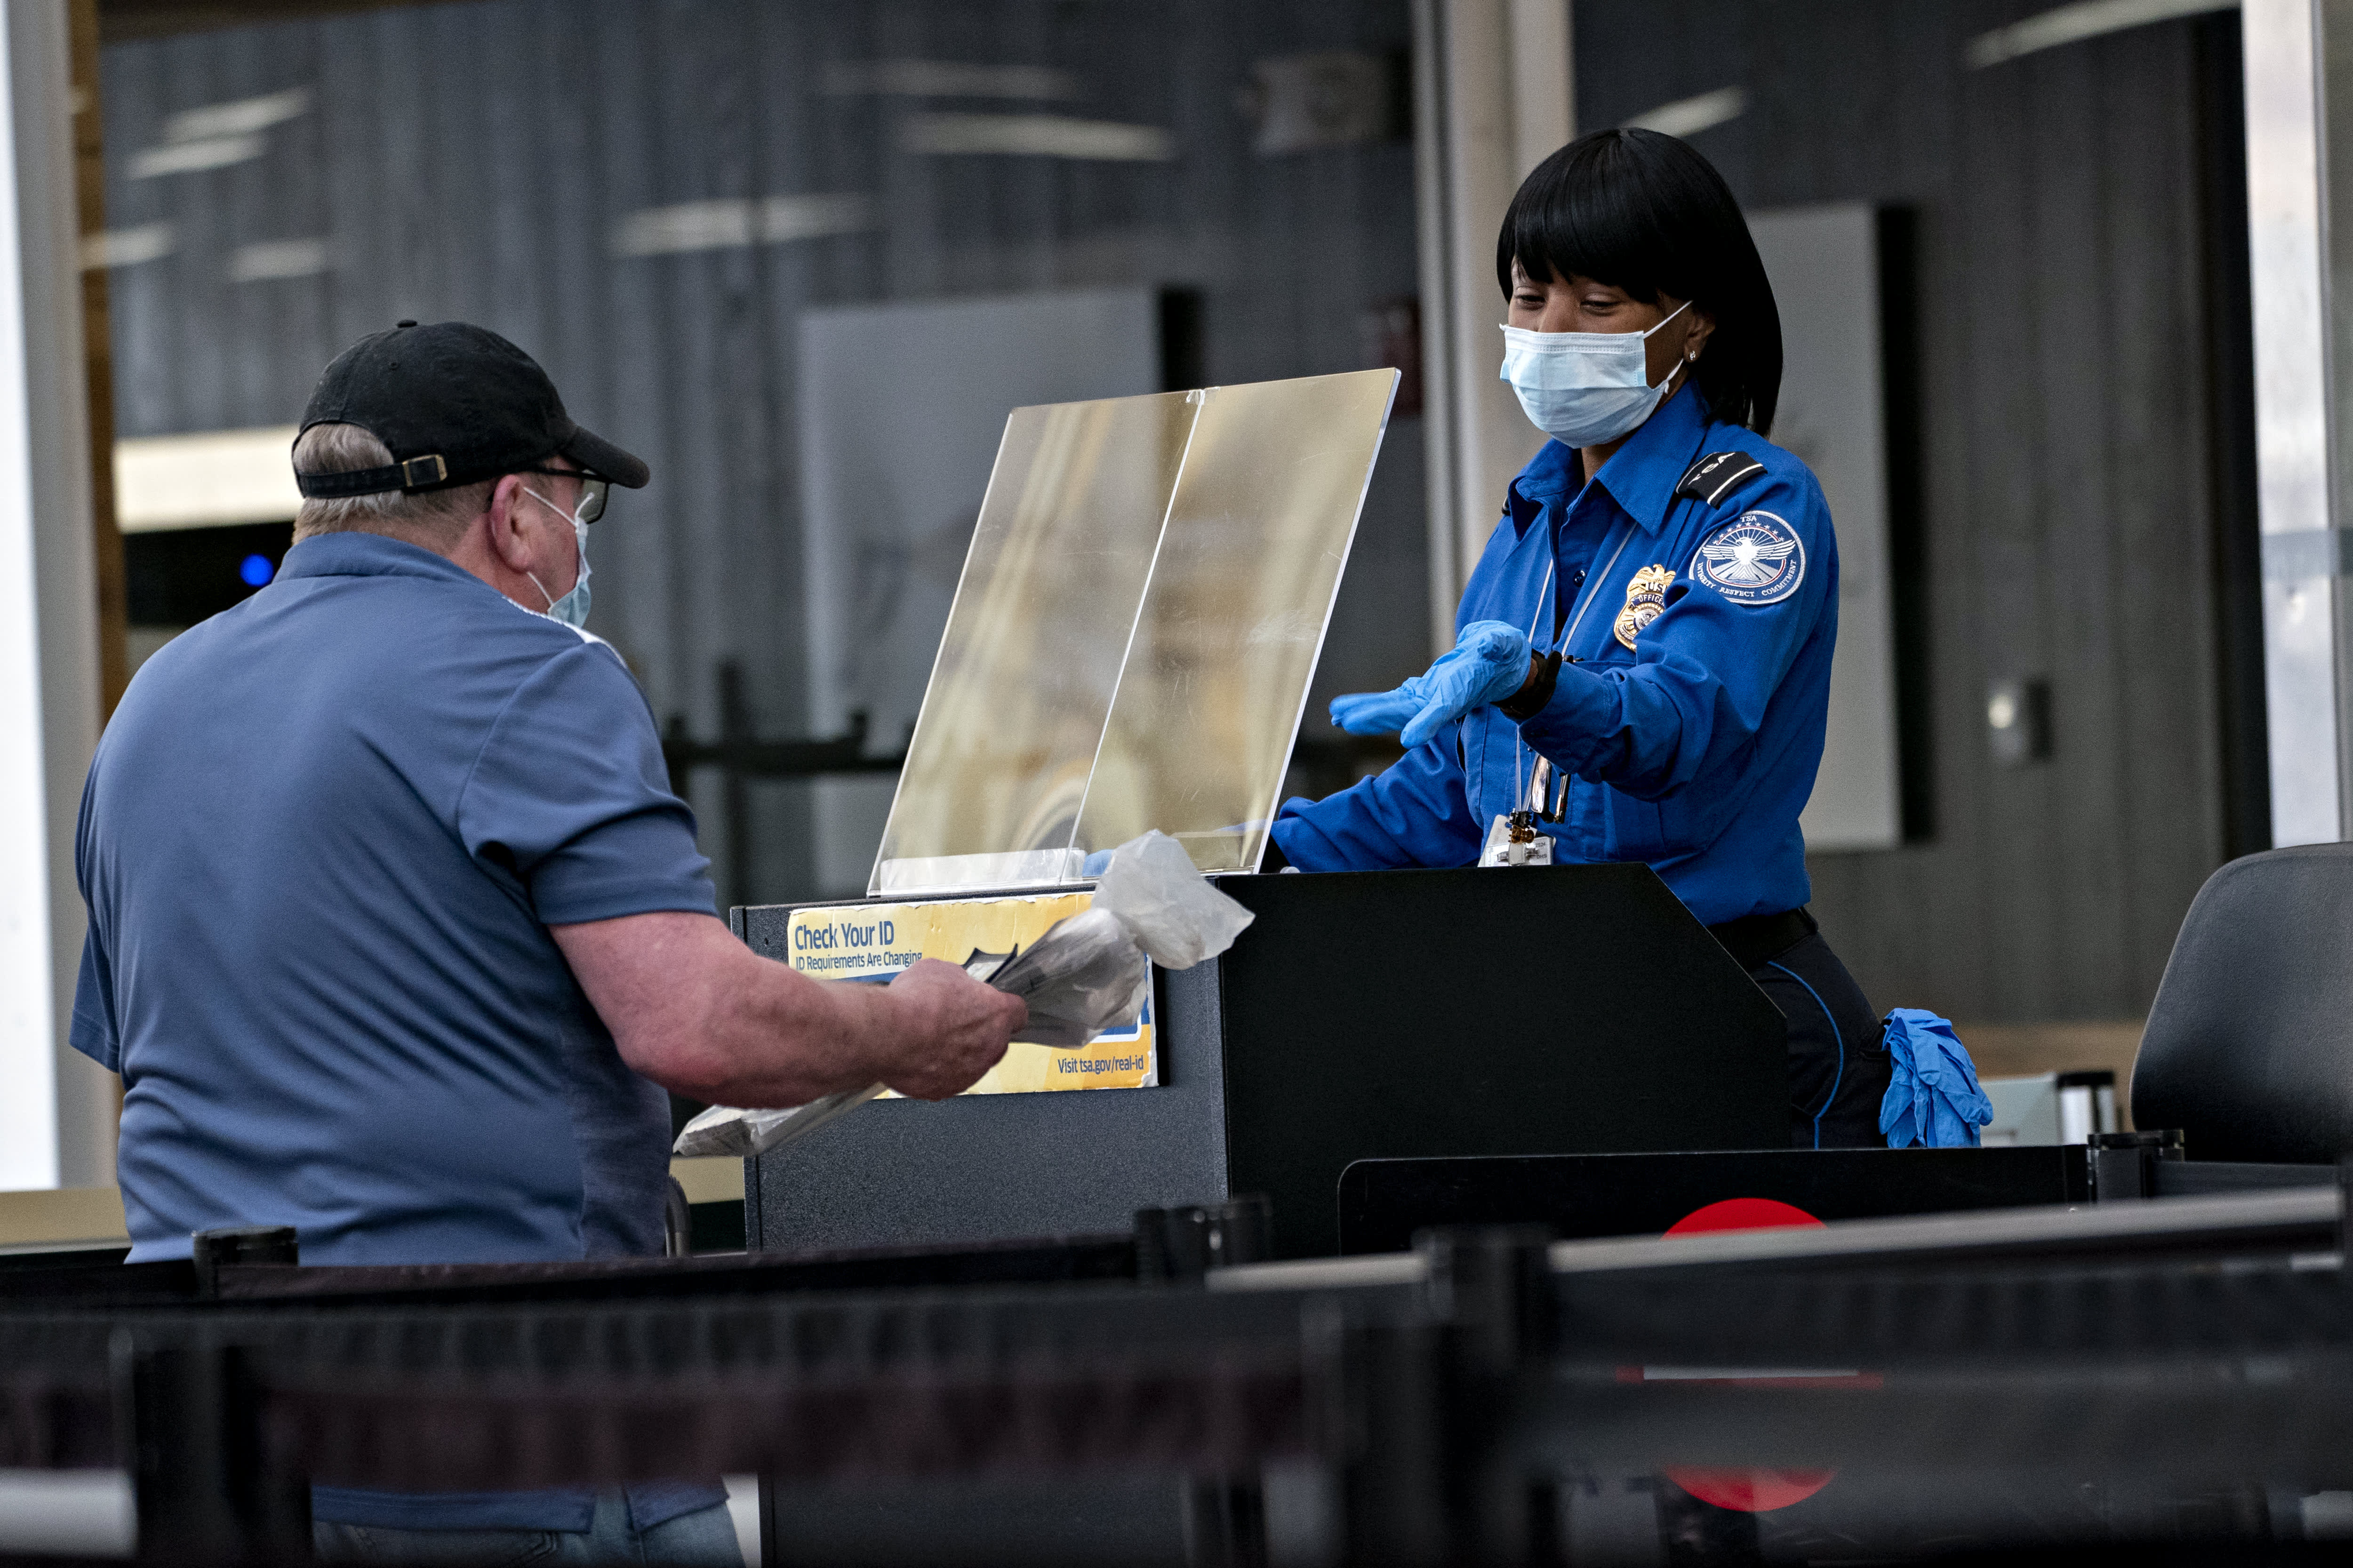 Air travel is picking up as TSA records highest passenger screenings in nearly a year - CNBC